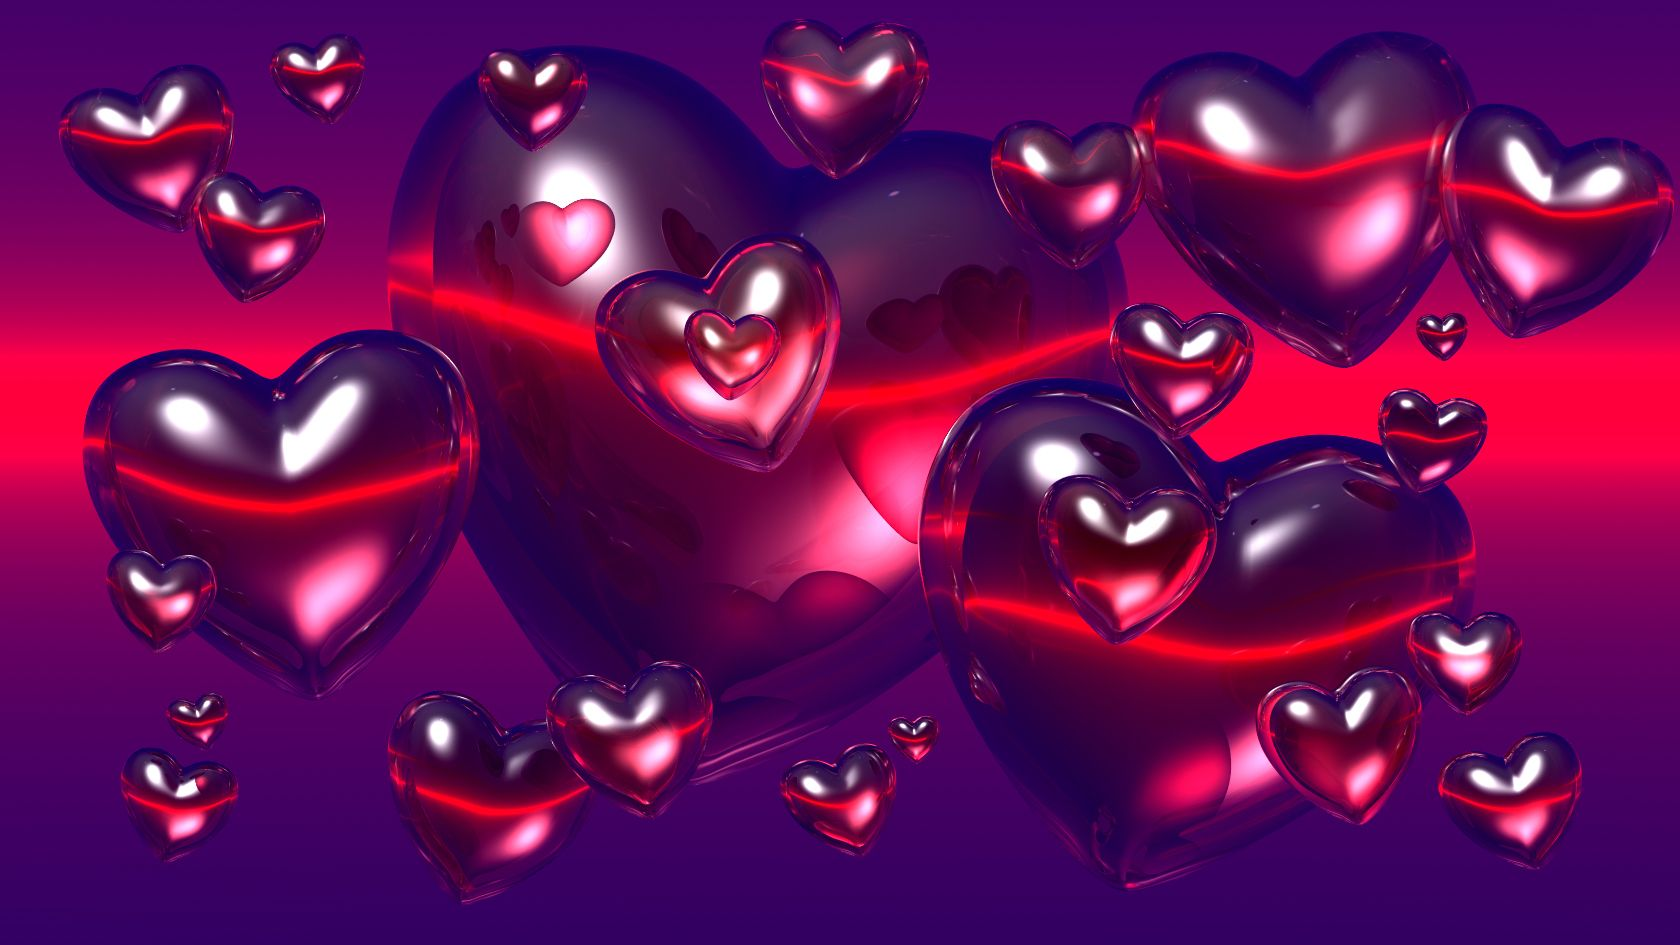 heart 3d wallpaper free #qzidt is lovely hd wallpaper for your